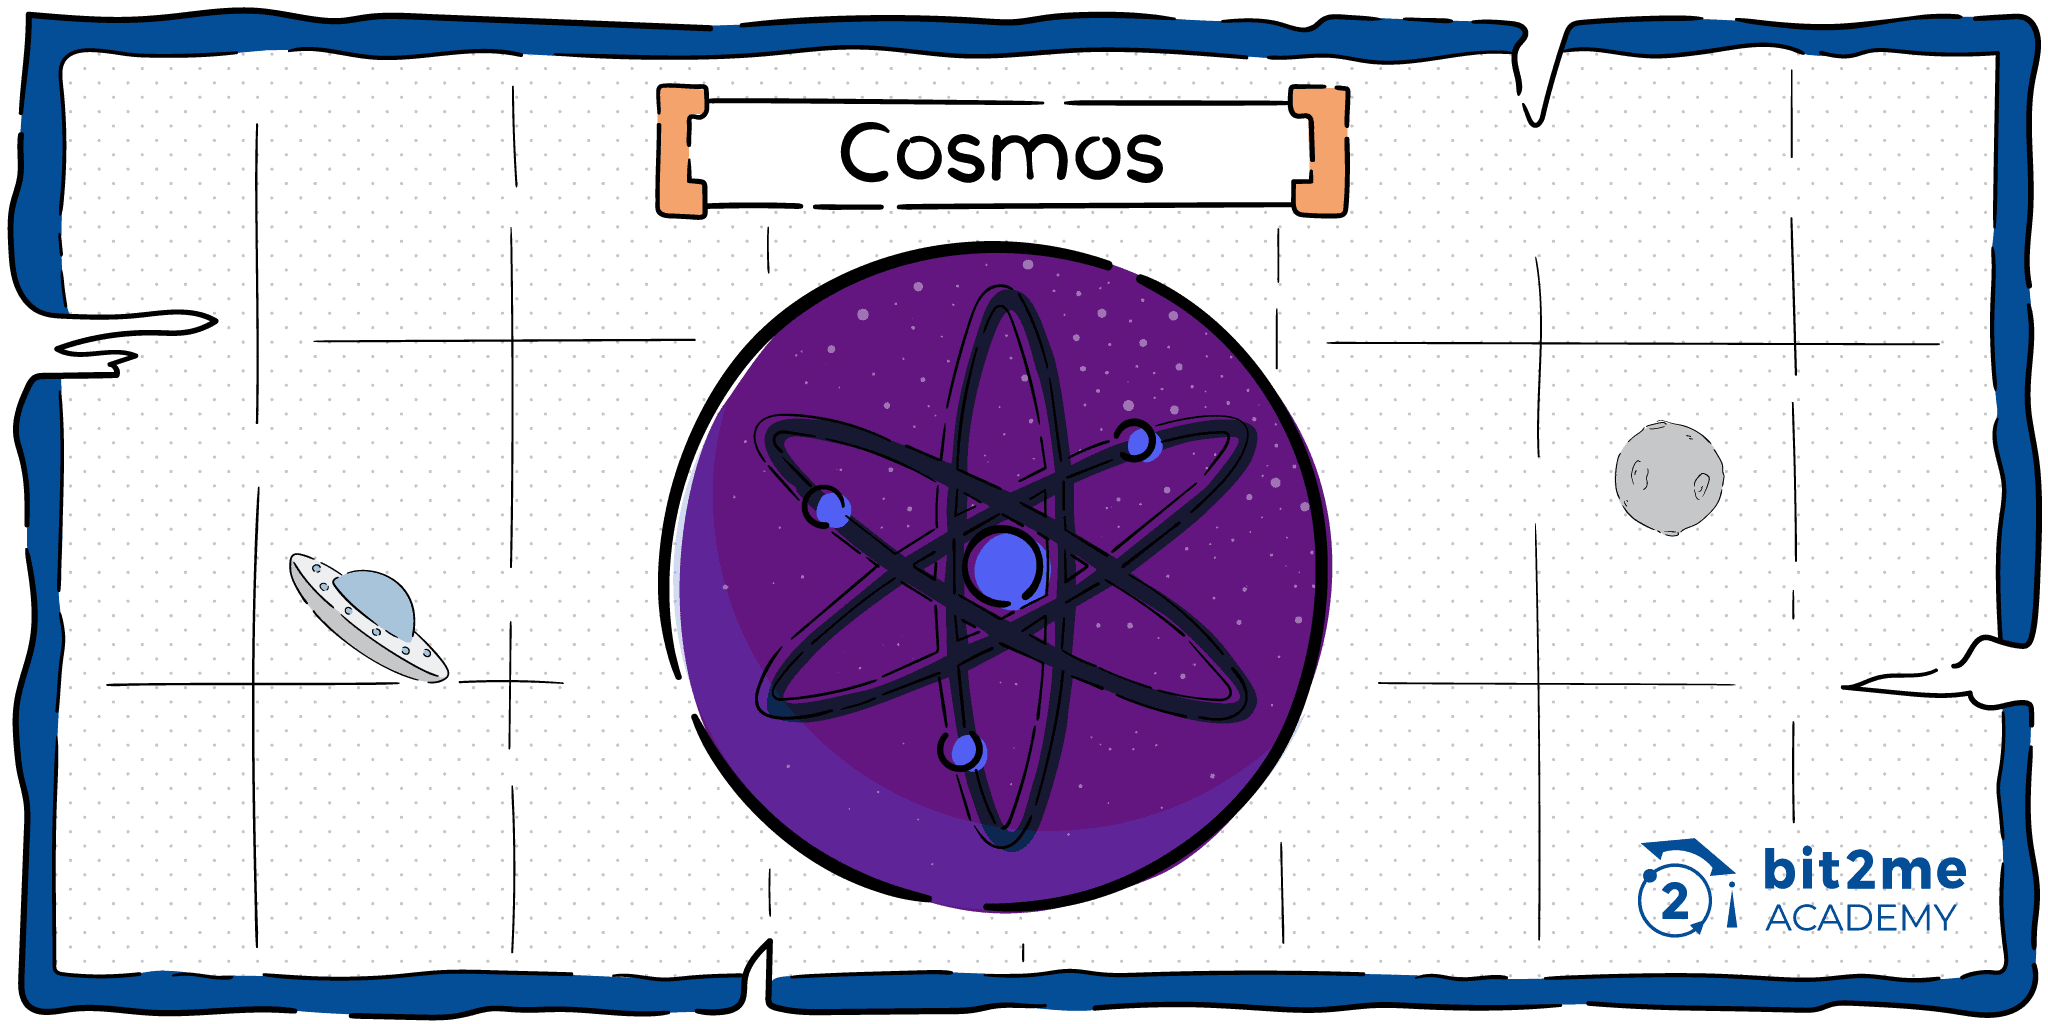 crypto cosmos, cryptocurrency cosmos